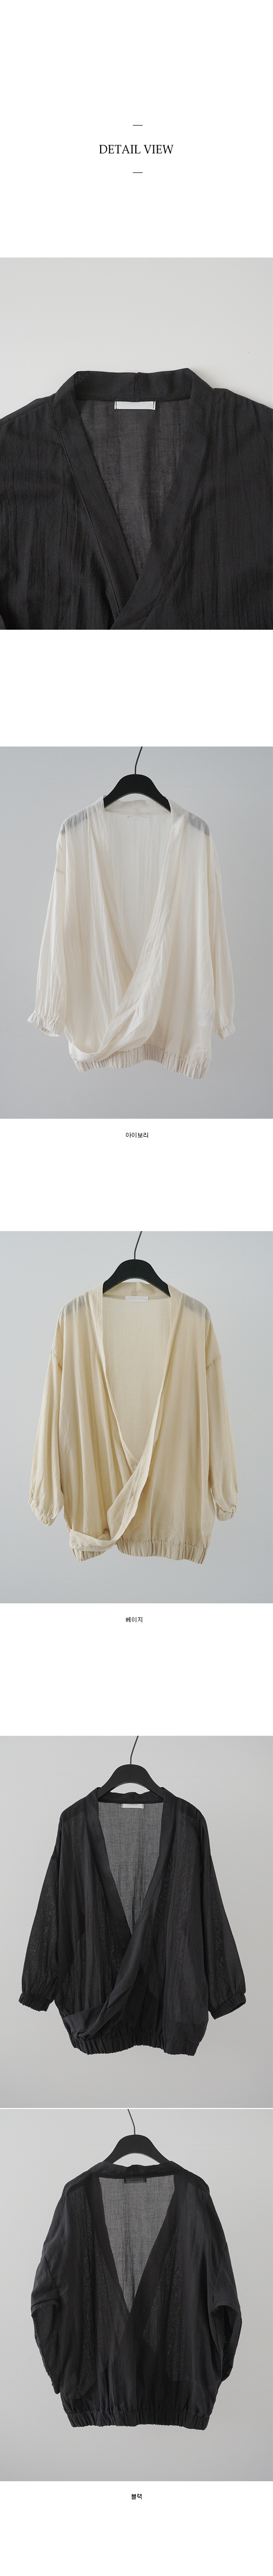 loose fit banding blouse